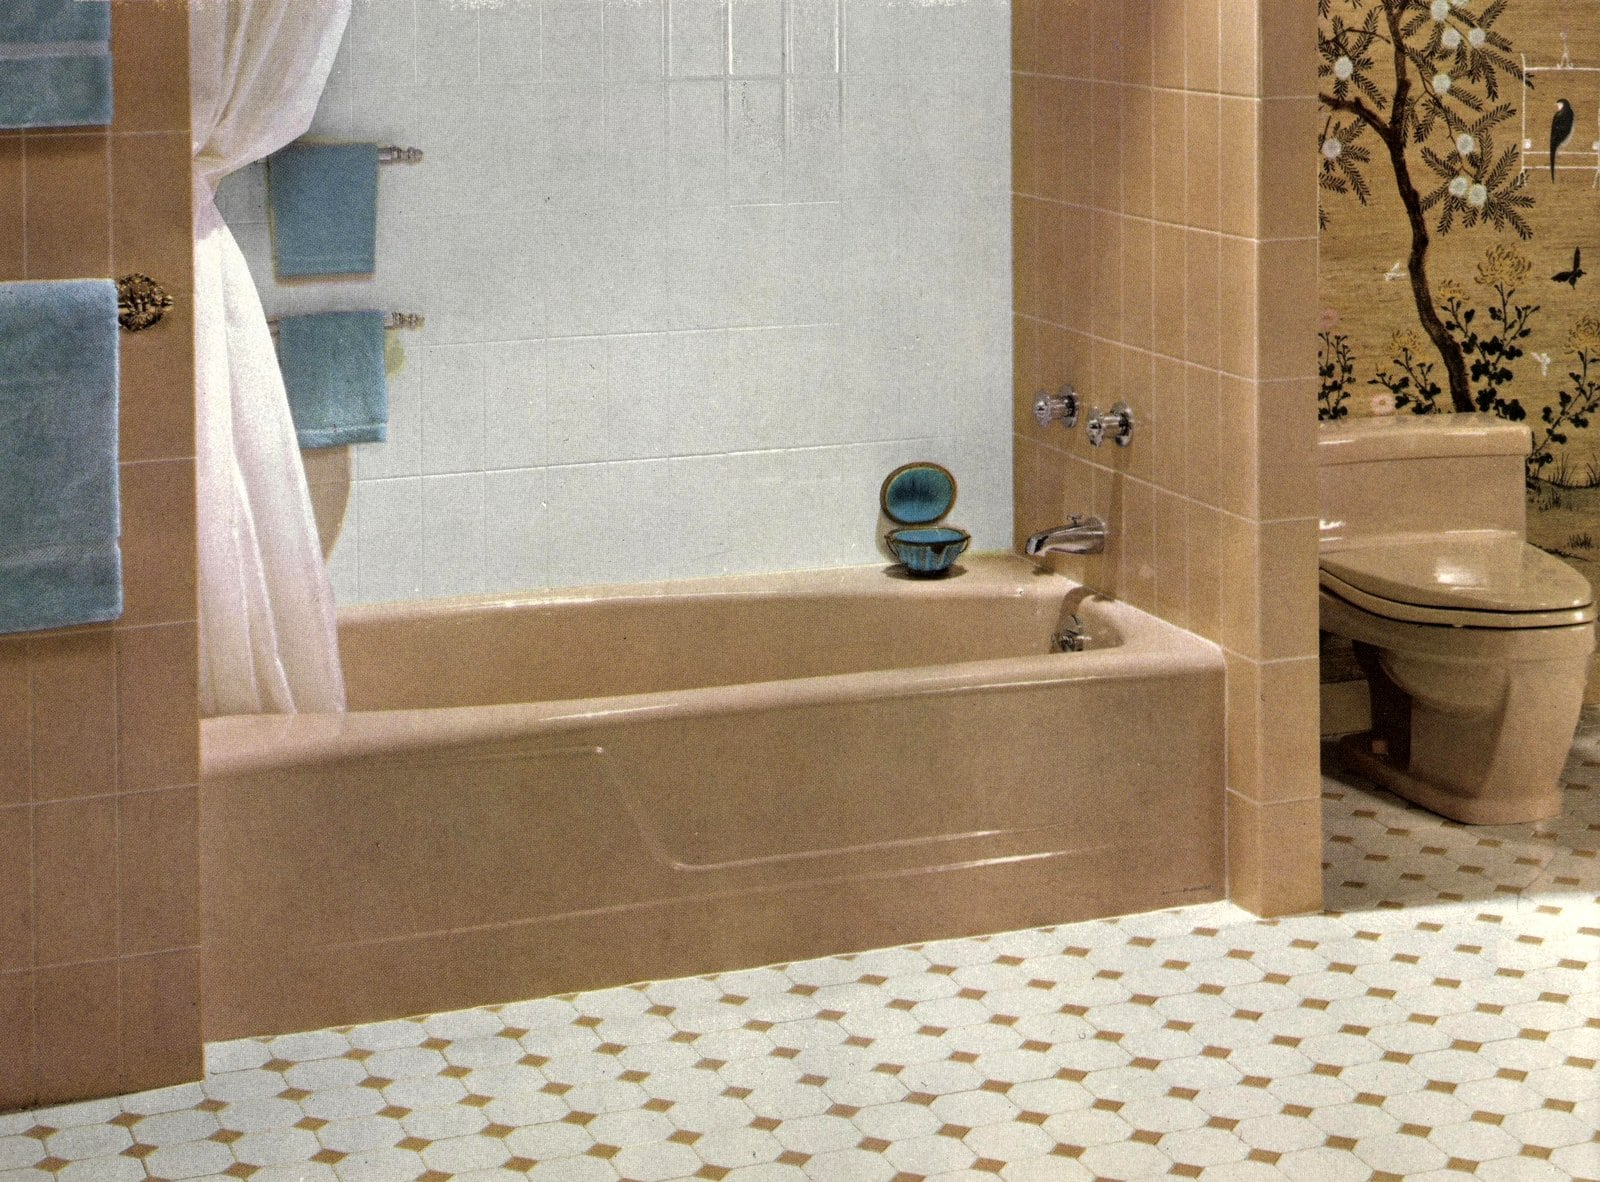 Beige and white vintage sixties bathroom suite and tile decor